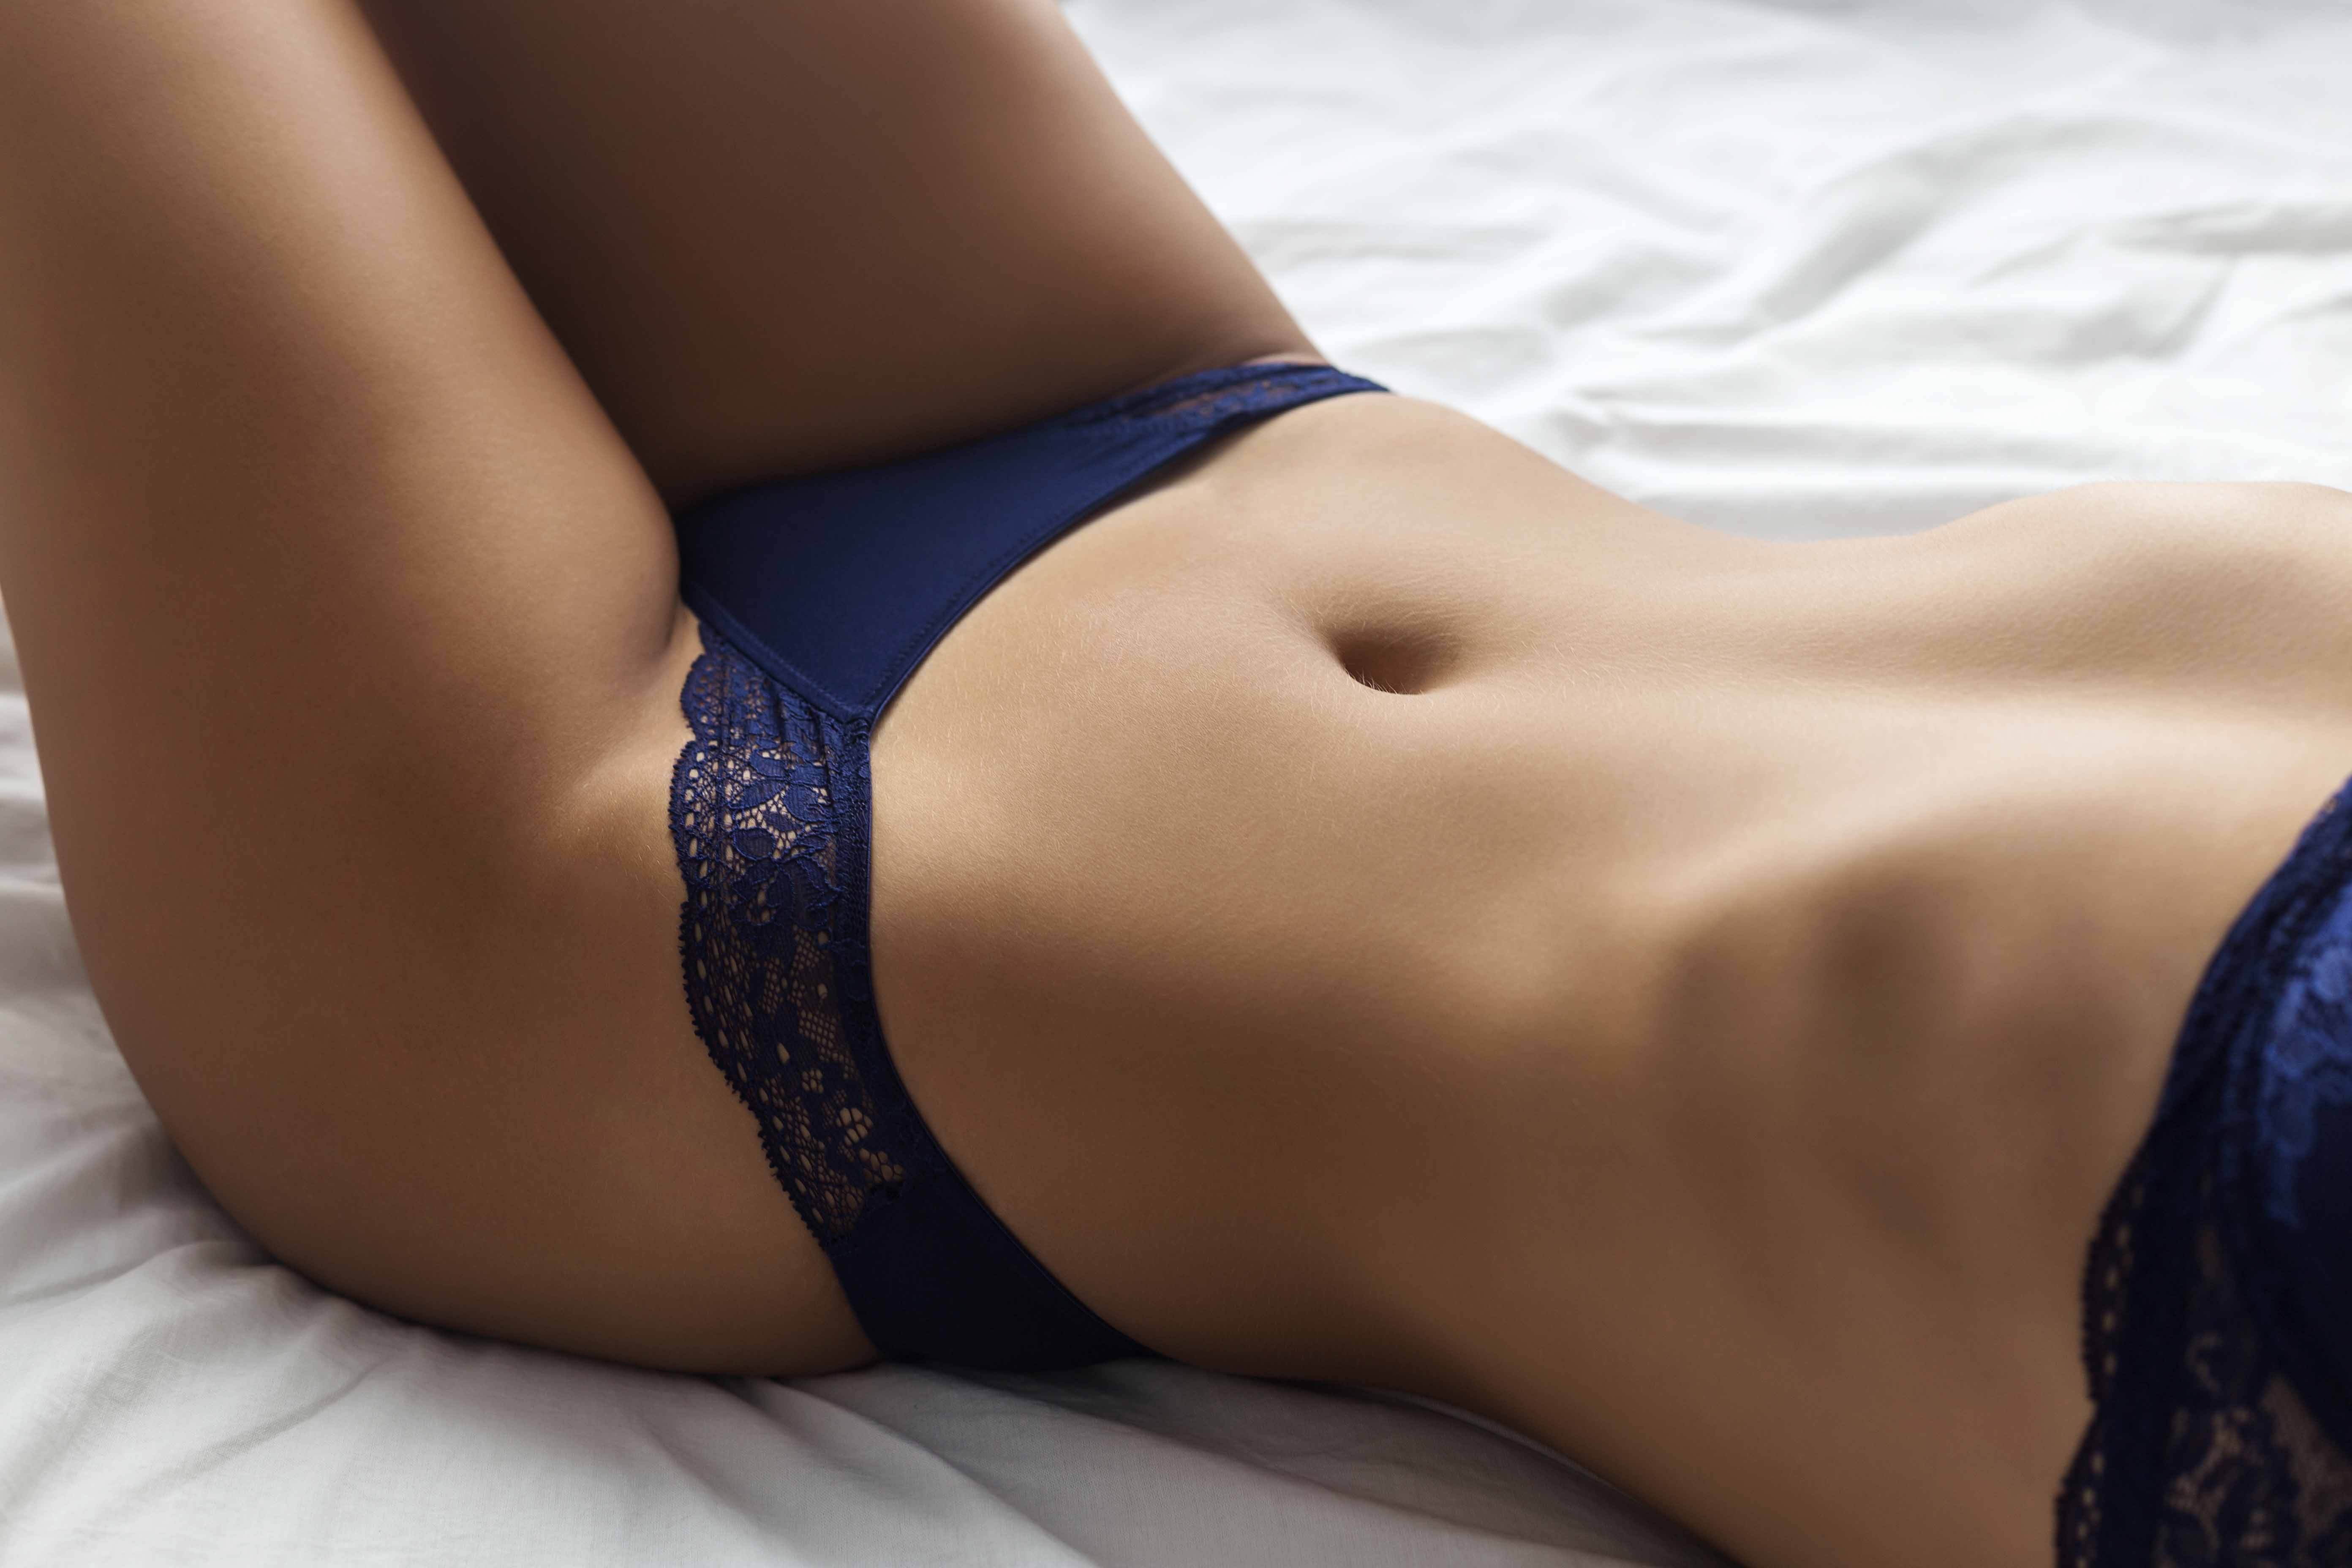 Sexy Young Woman in Lingerie on The Bed   Tiffany's Girls Sydney Brothel